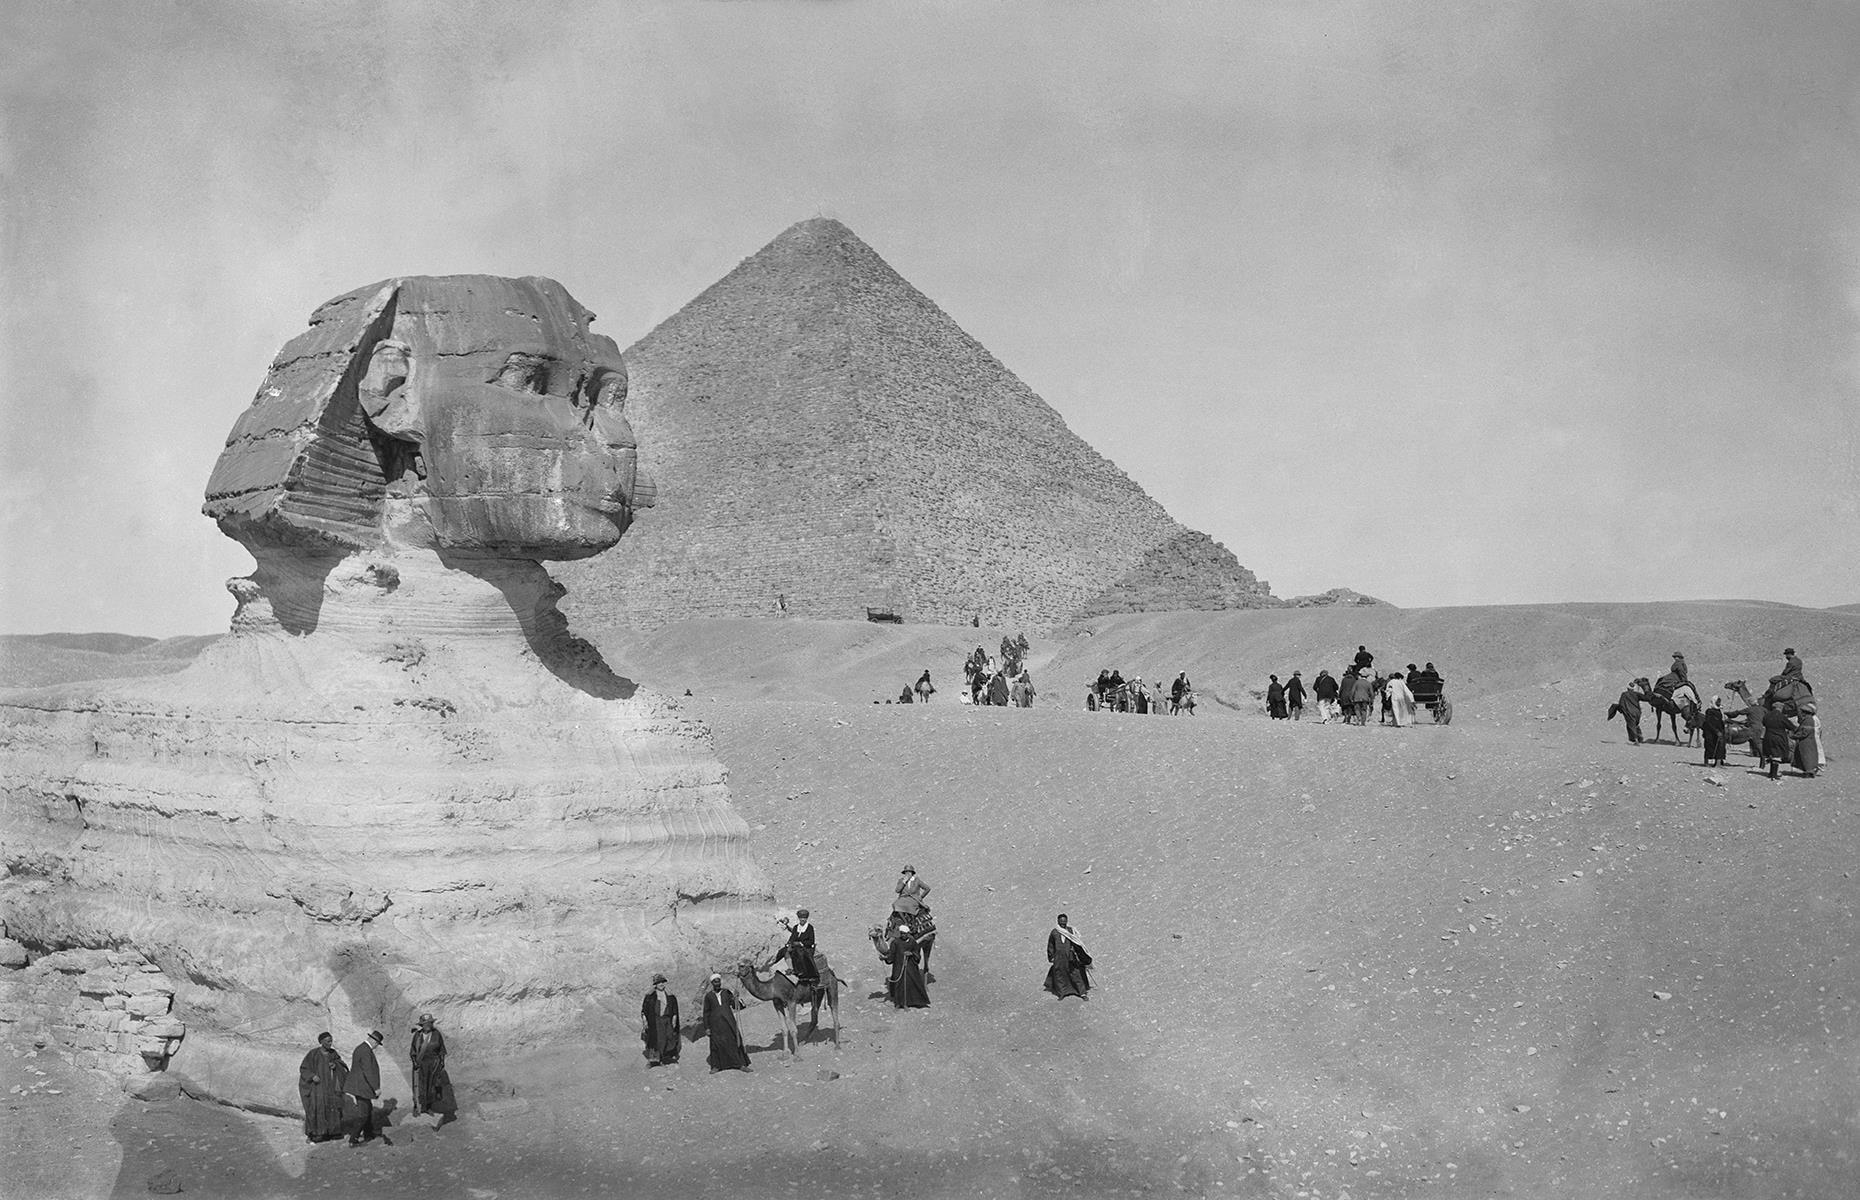 Slide 20 of 35: Beyond their decks and lavish lounges, cruises gave wealthy passengers the opportunity to explore far-flung destinations on organized excursions. Here American tourists from the Cunard liner Scythia are pictured wandering the ancient Giza pyramid complex, near Cairo, Egypt in 1923. Take a look at more vintage photos of the world's most famous landmarks.